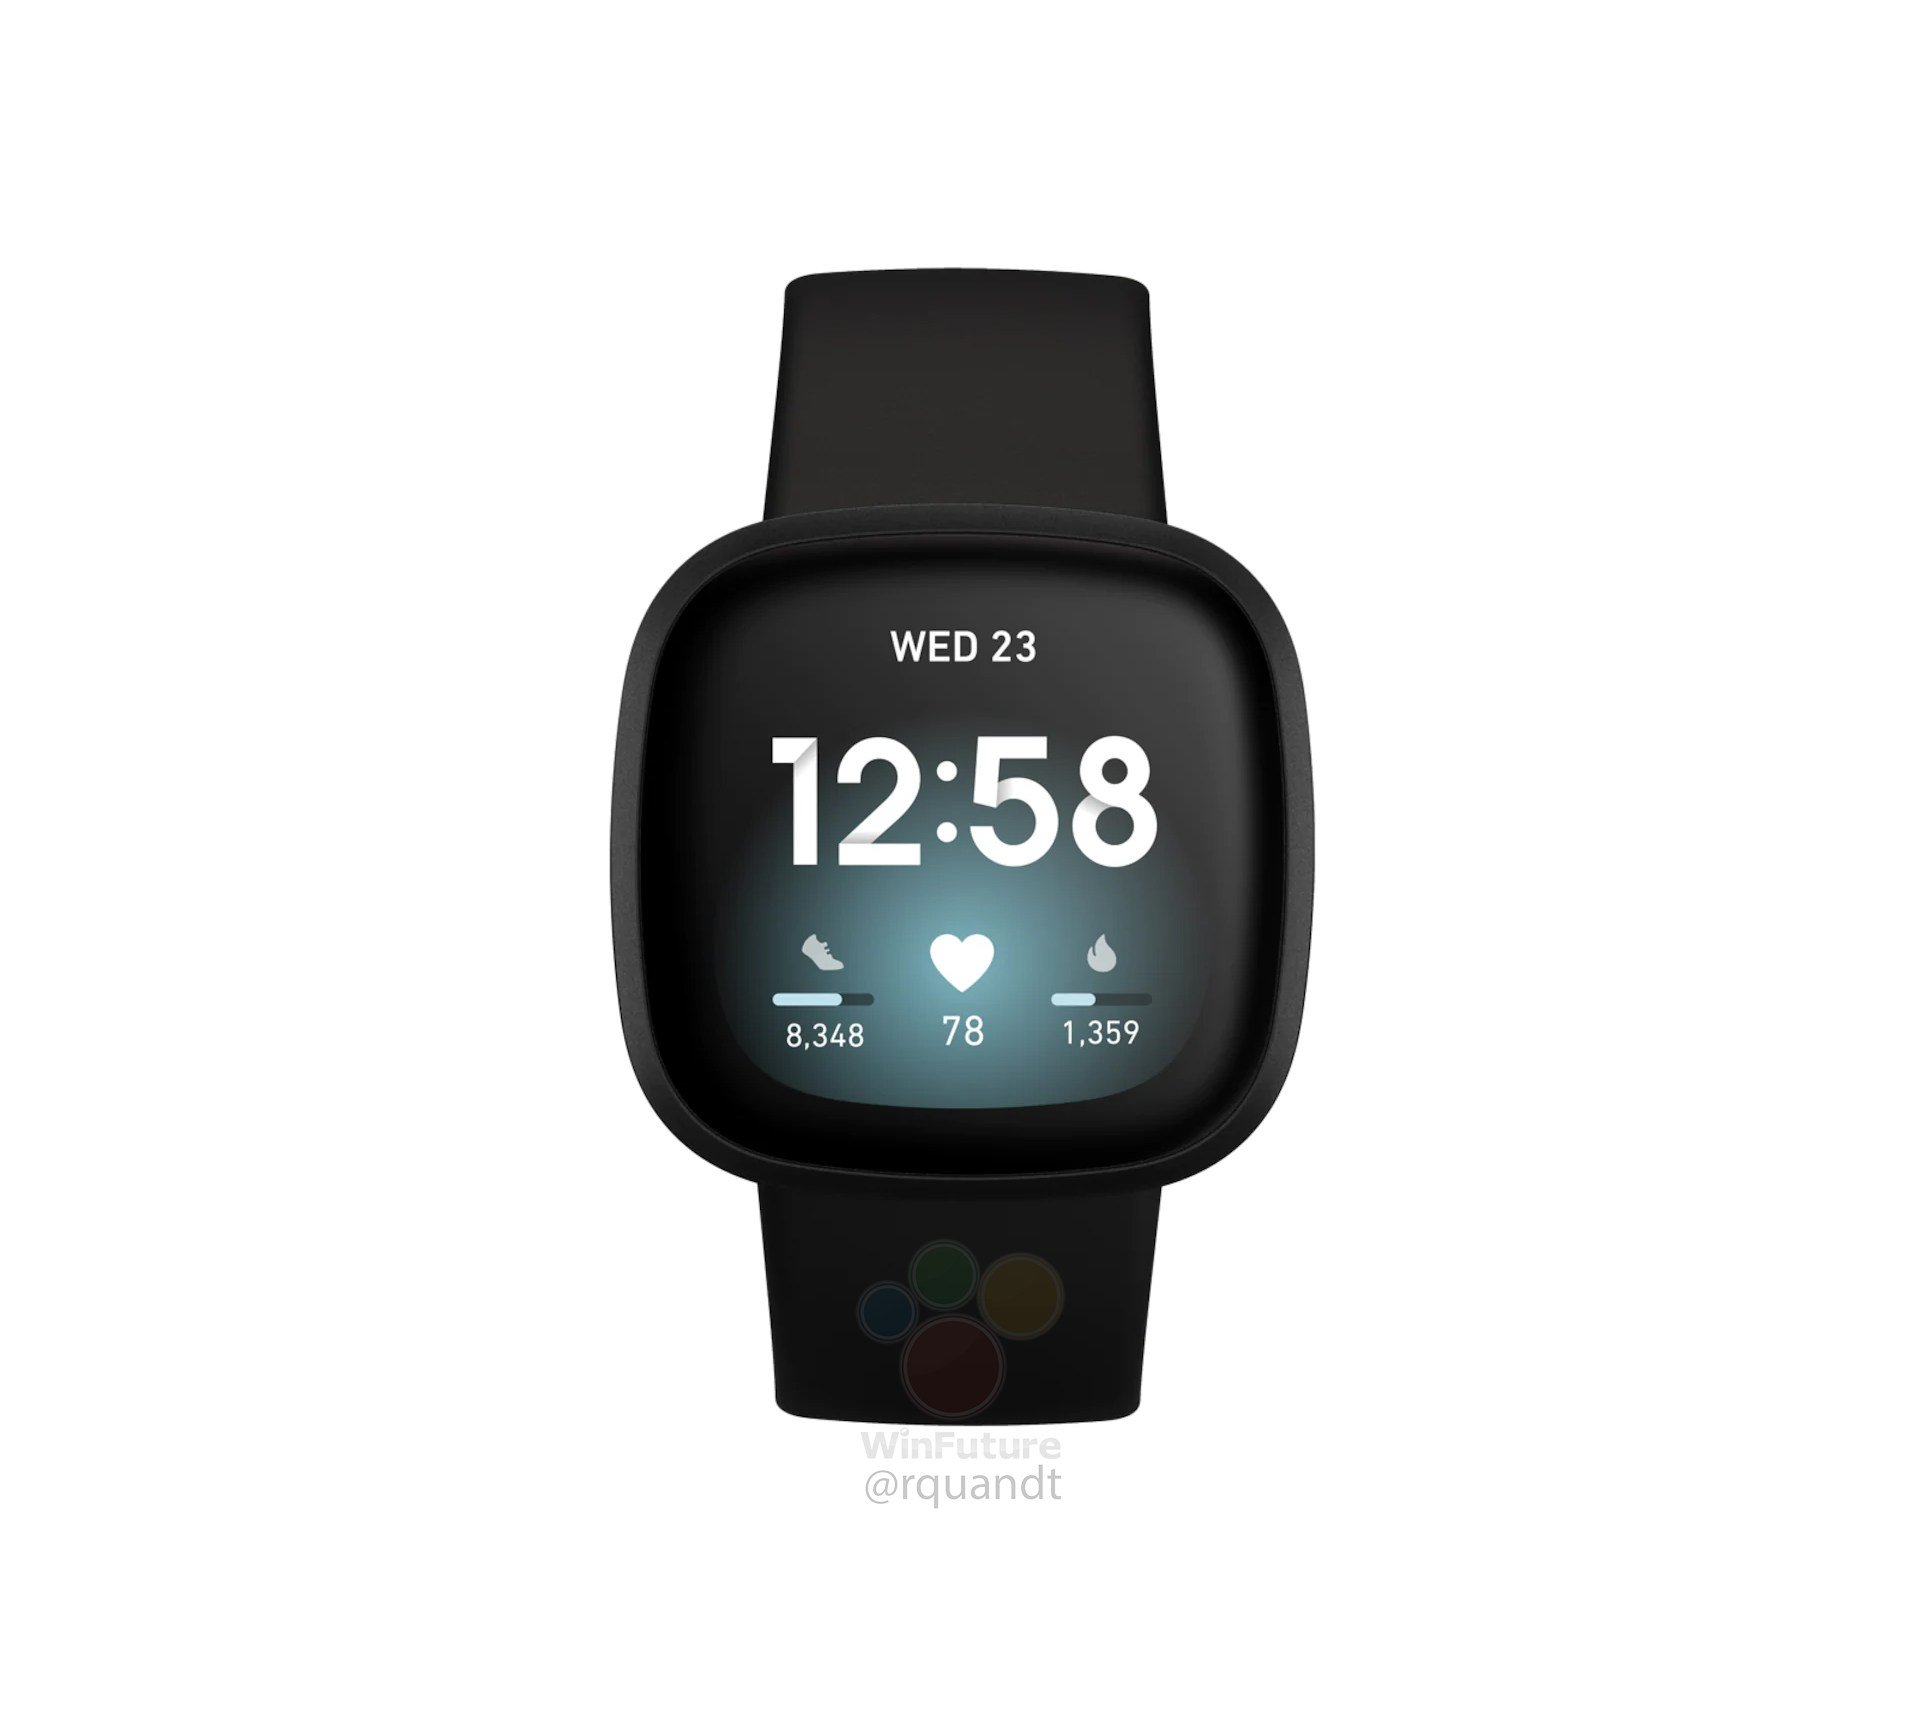 Fitbit's upcoming Versa 3 and Sense smartwatches leaked in detailed renders